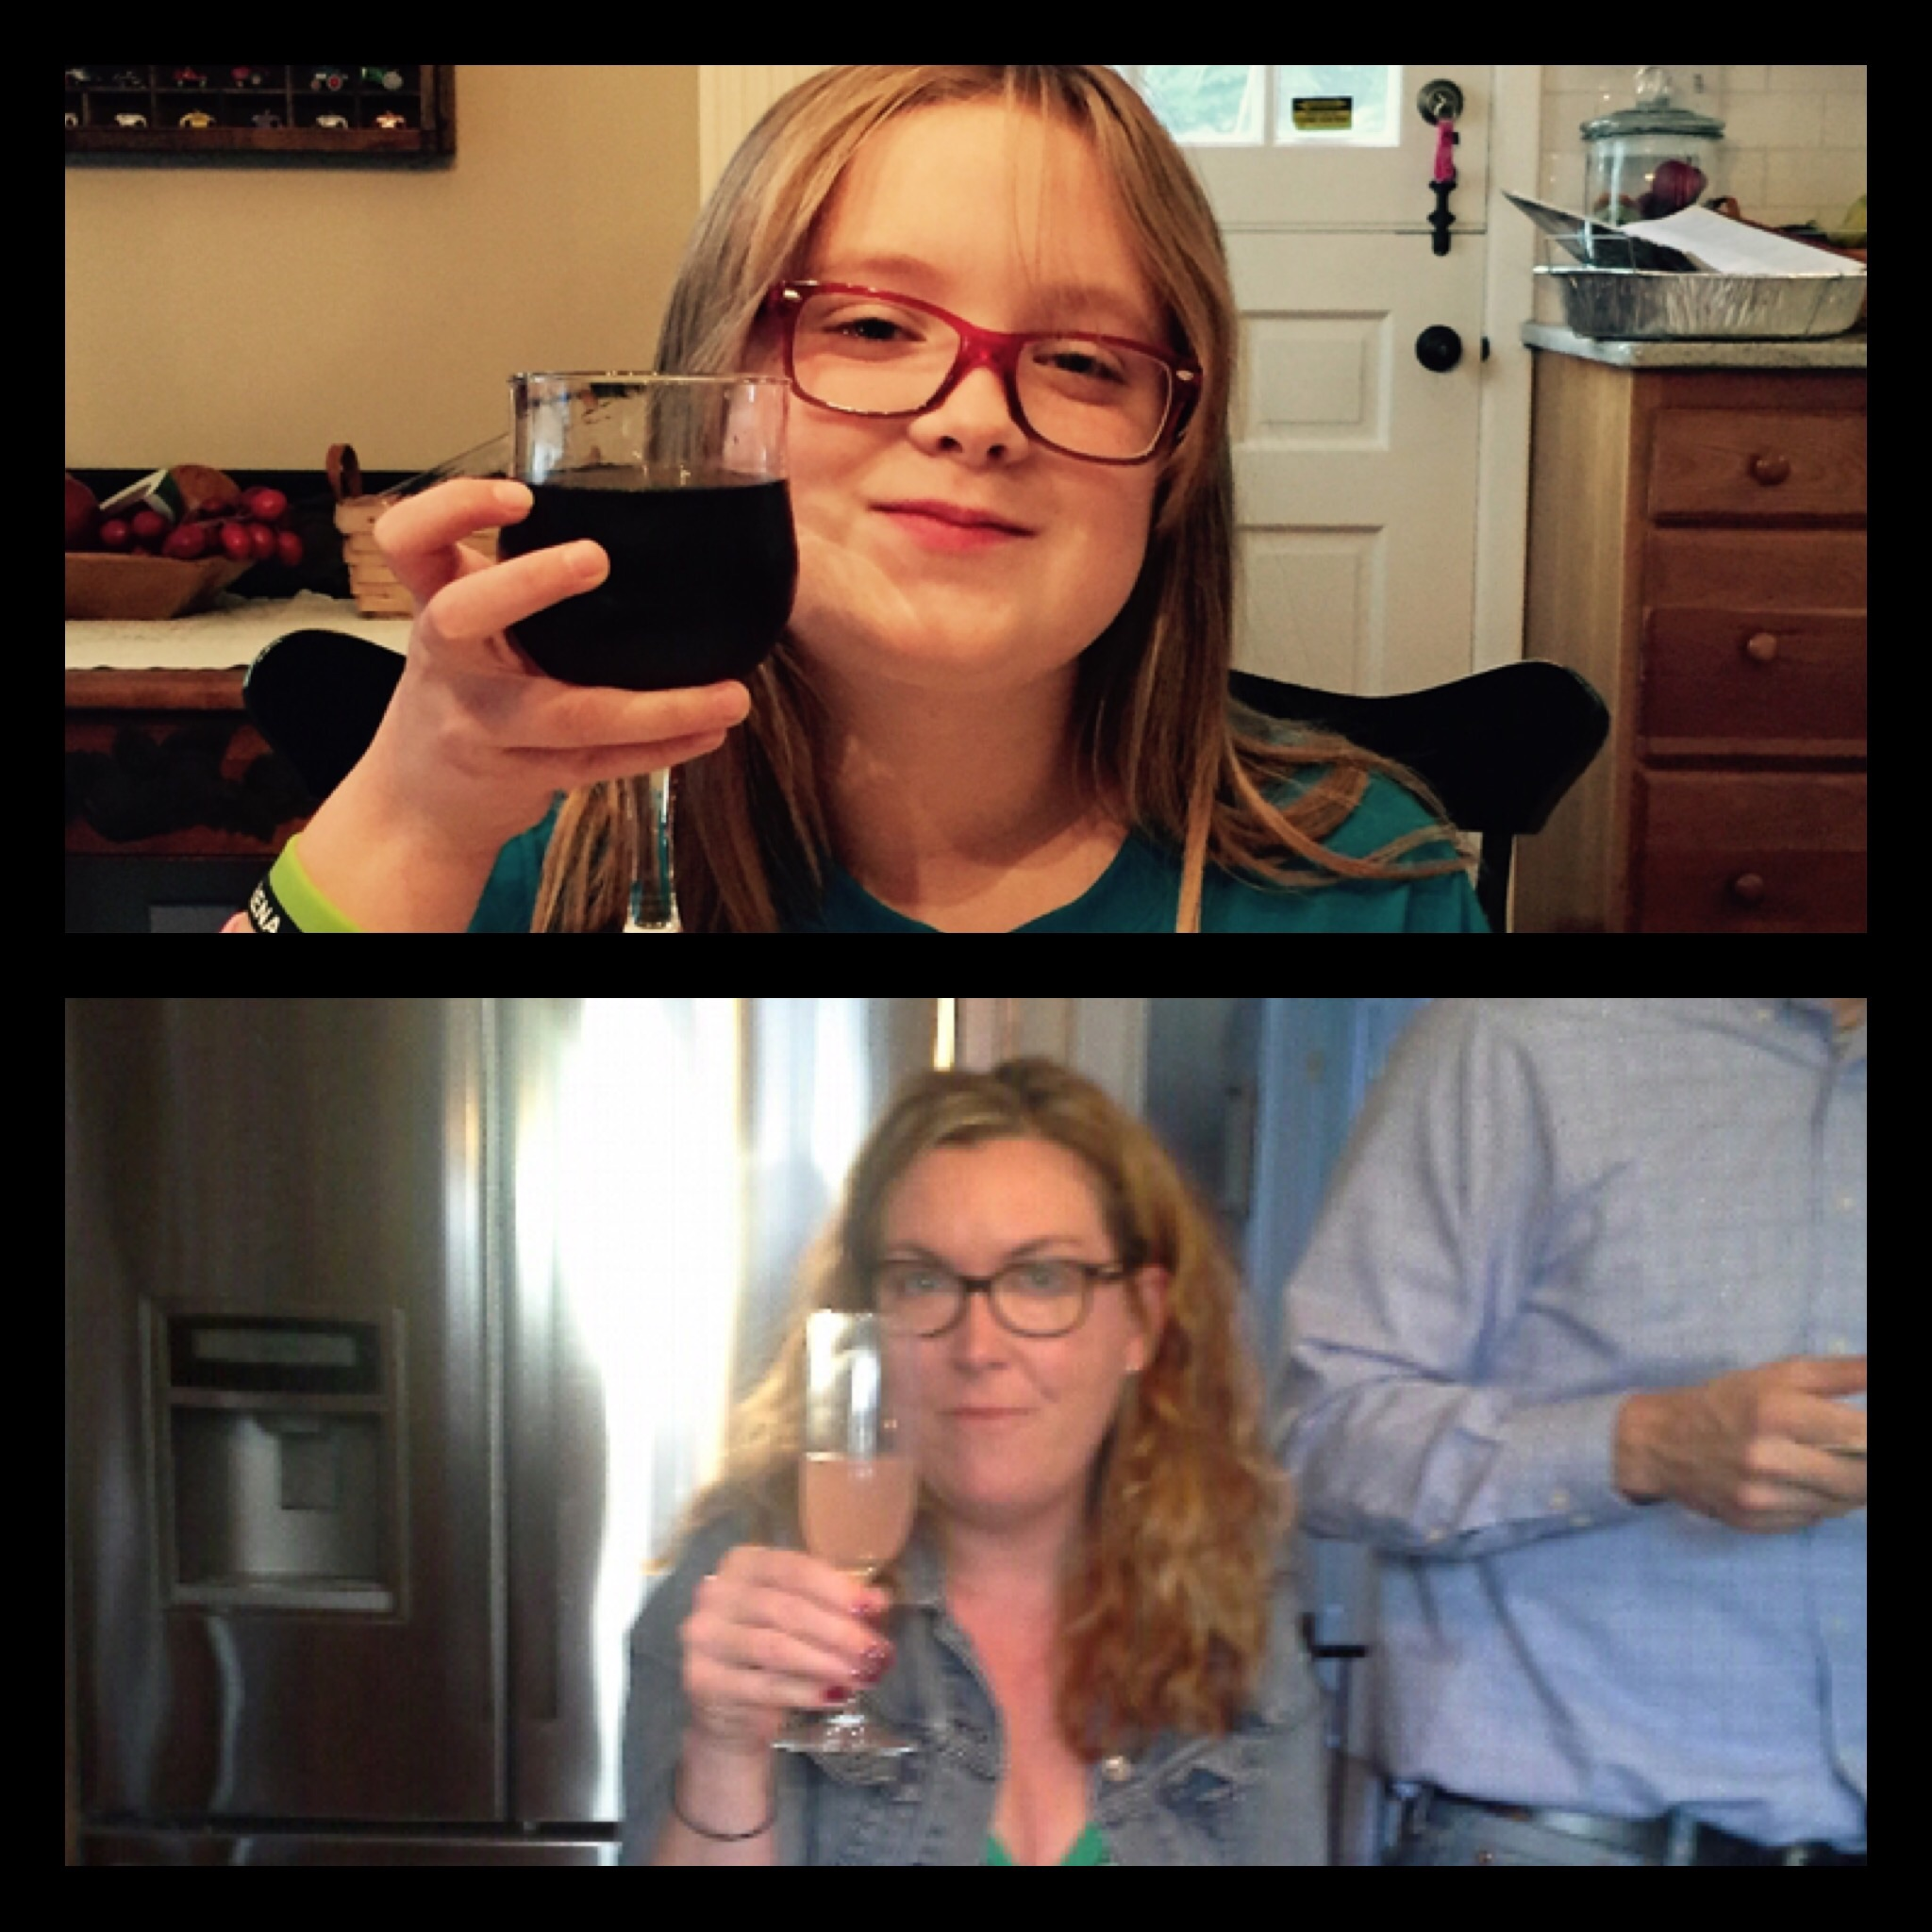 """Sent this to my cousin cause Zoey said """"I feel like Auntie with this glass"""" and she sent this right back. Ahh to celebrate by technology"""